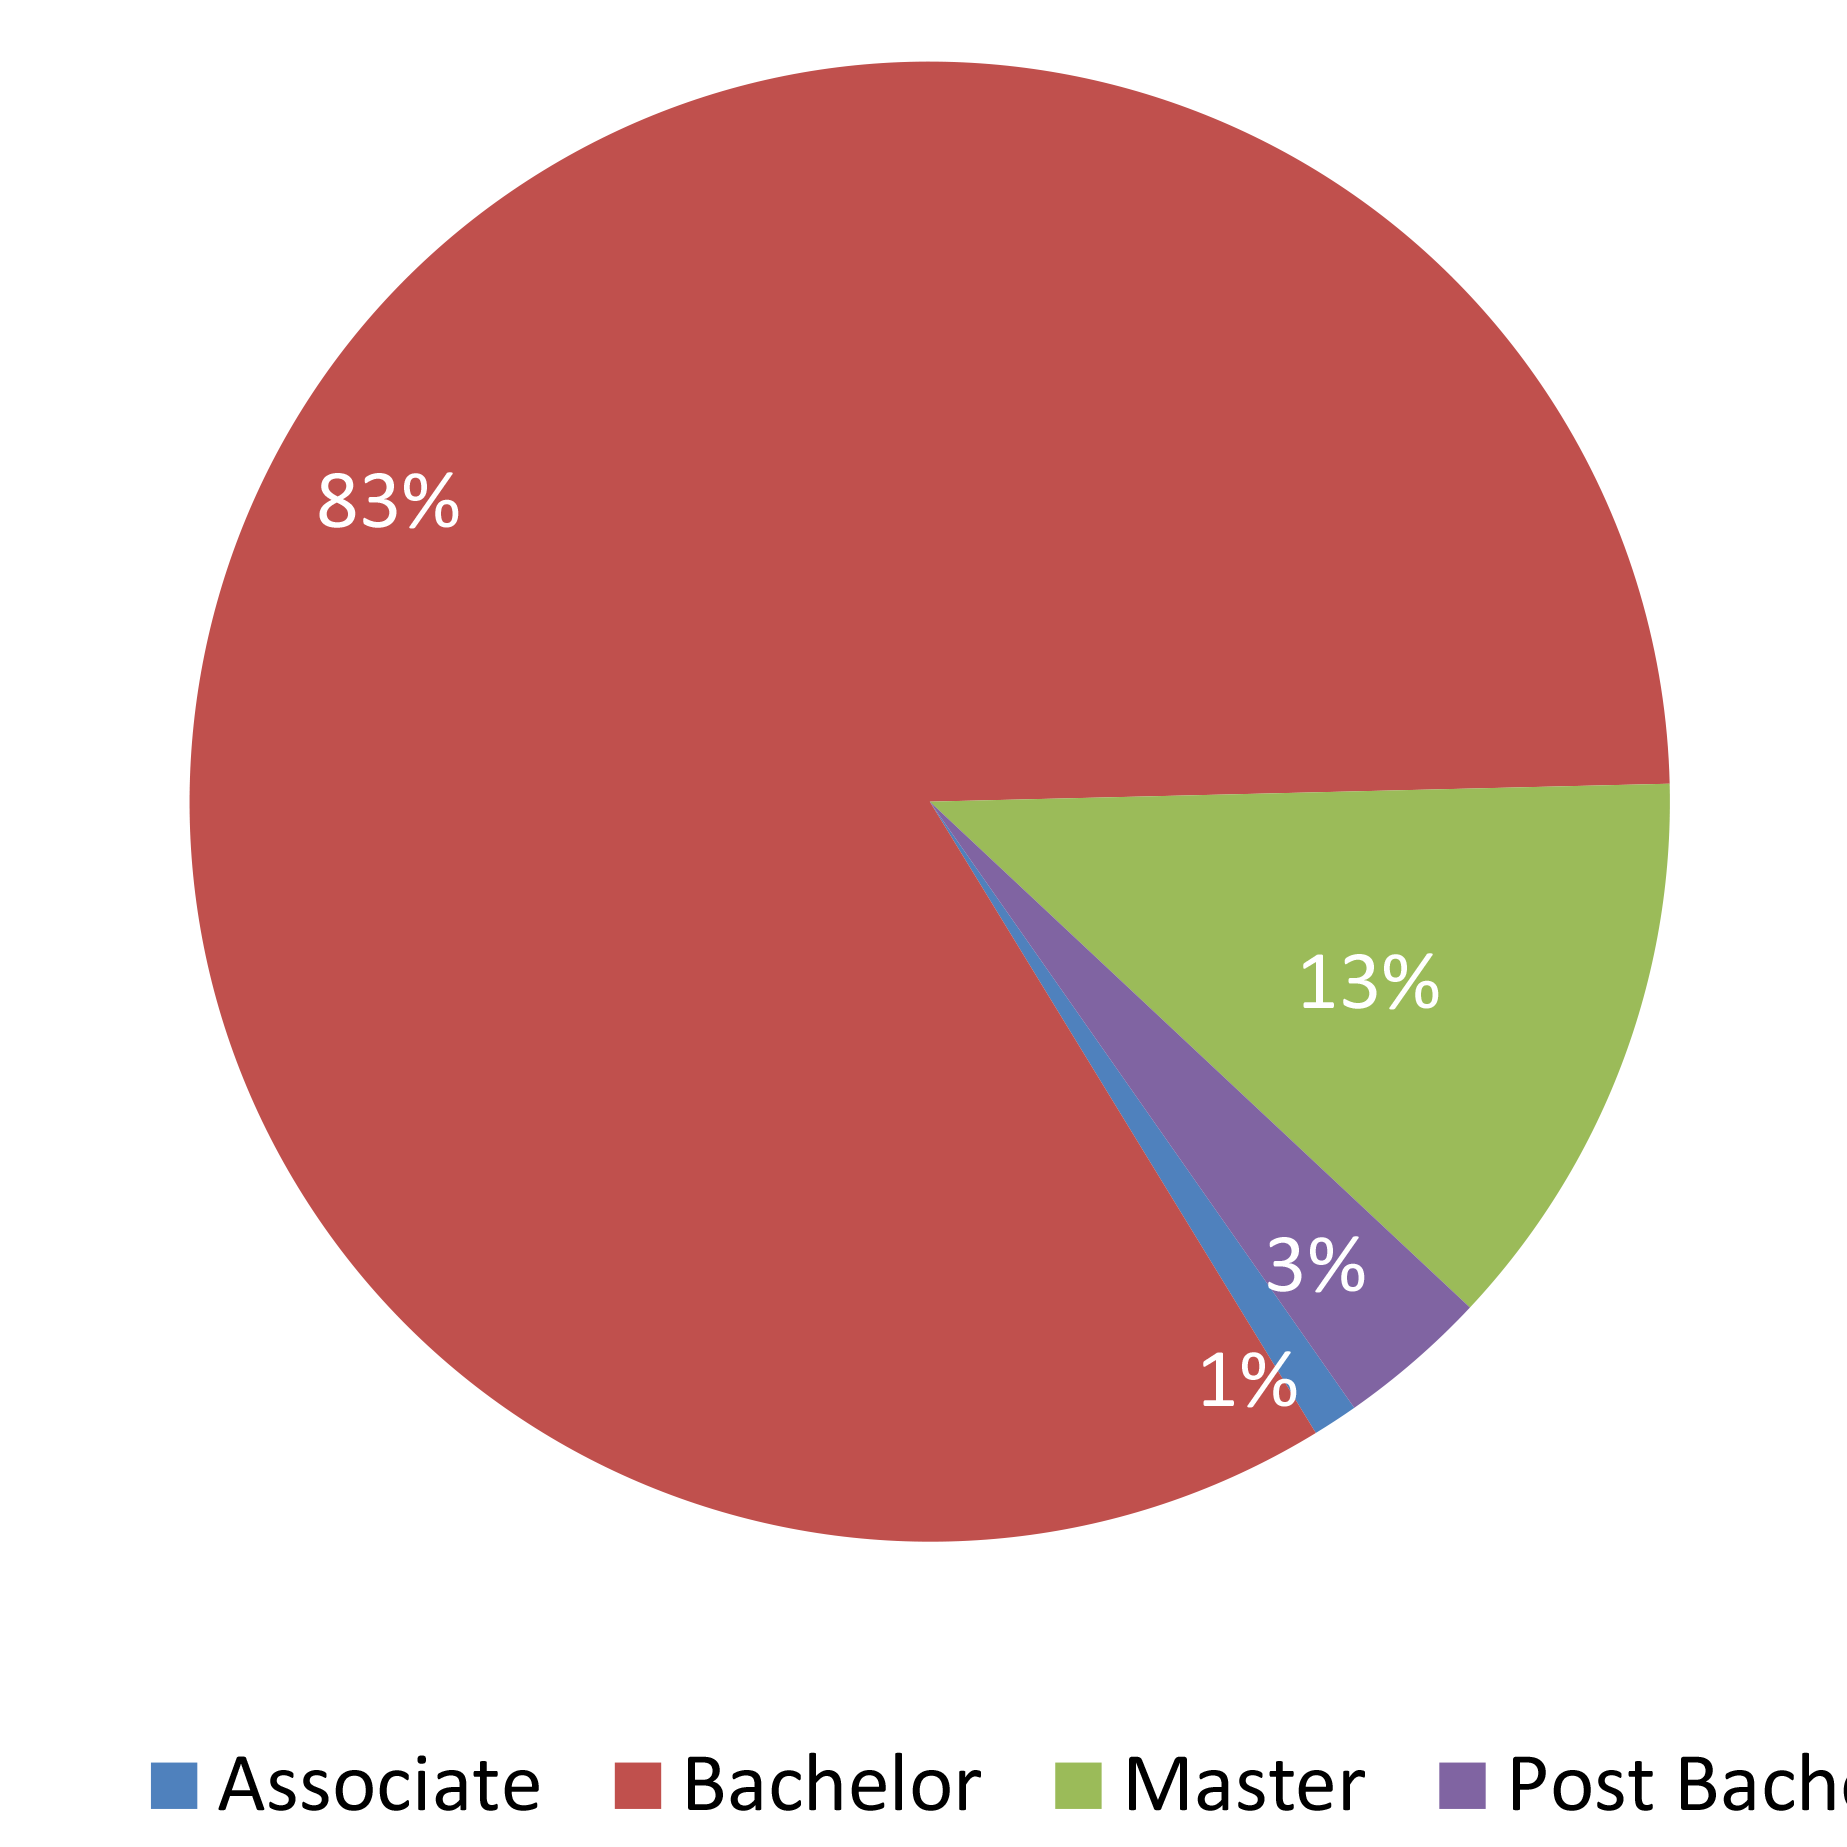 degrees-conferred-pie-beirut.png